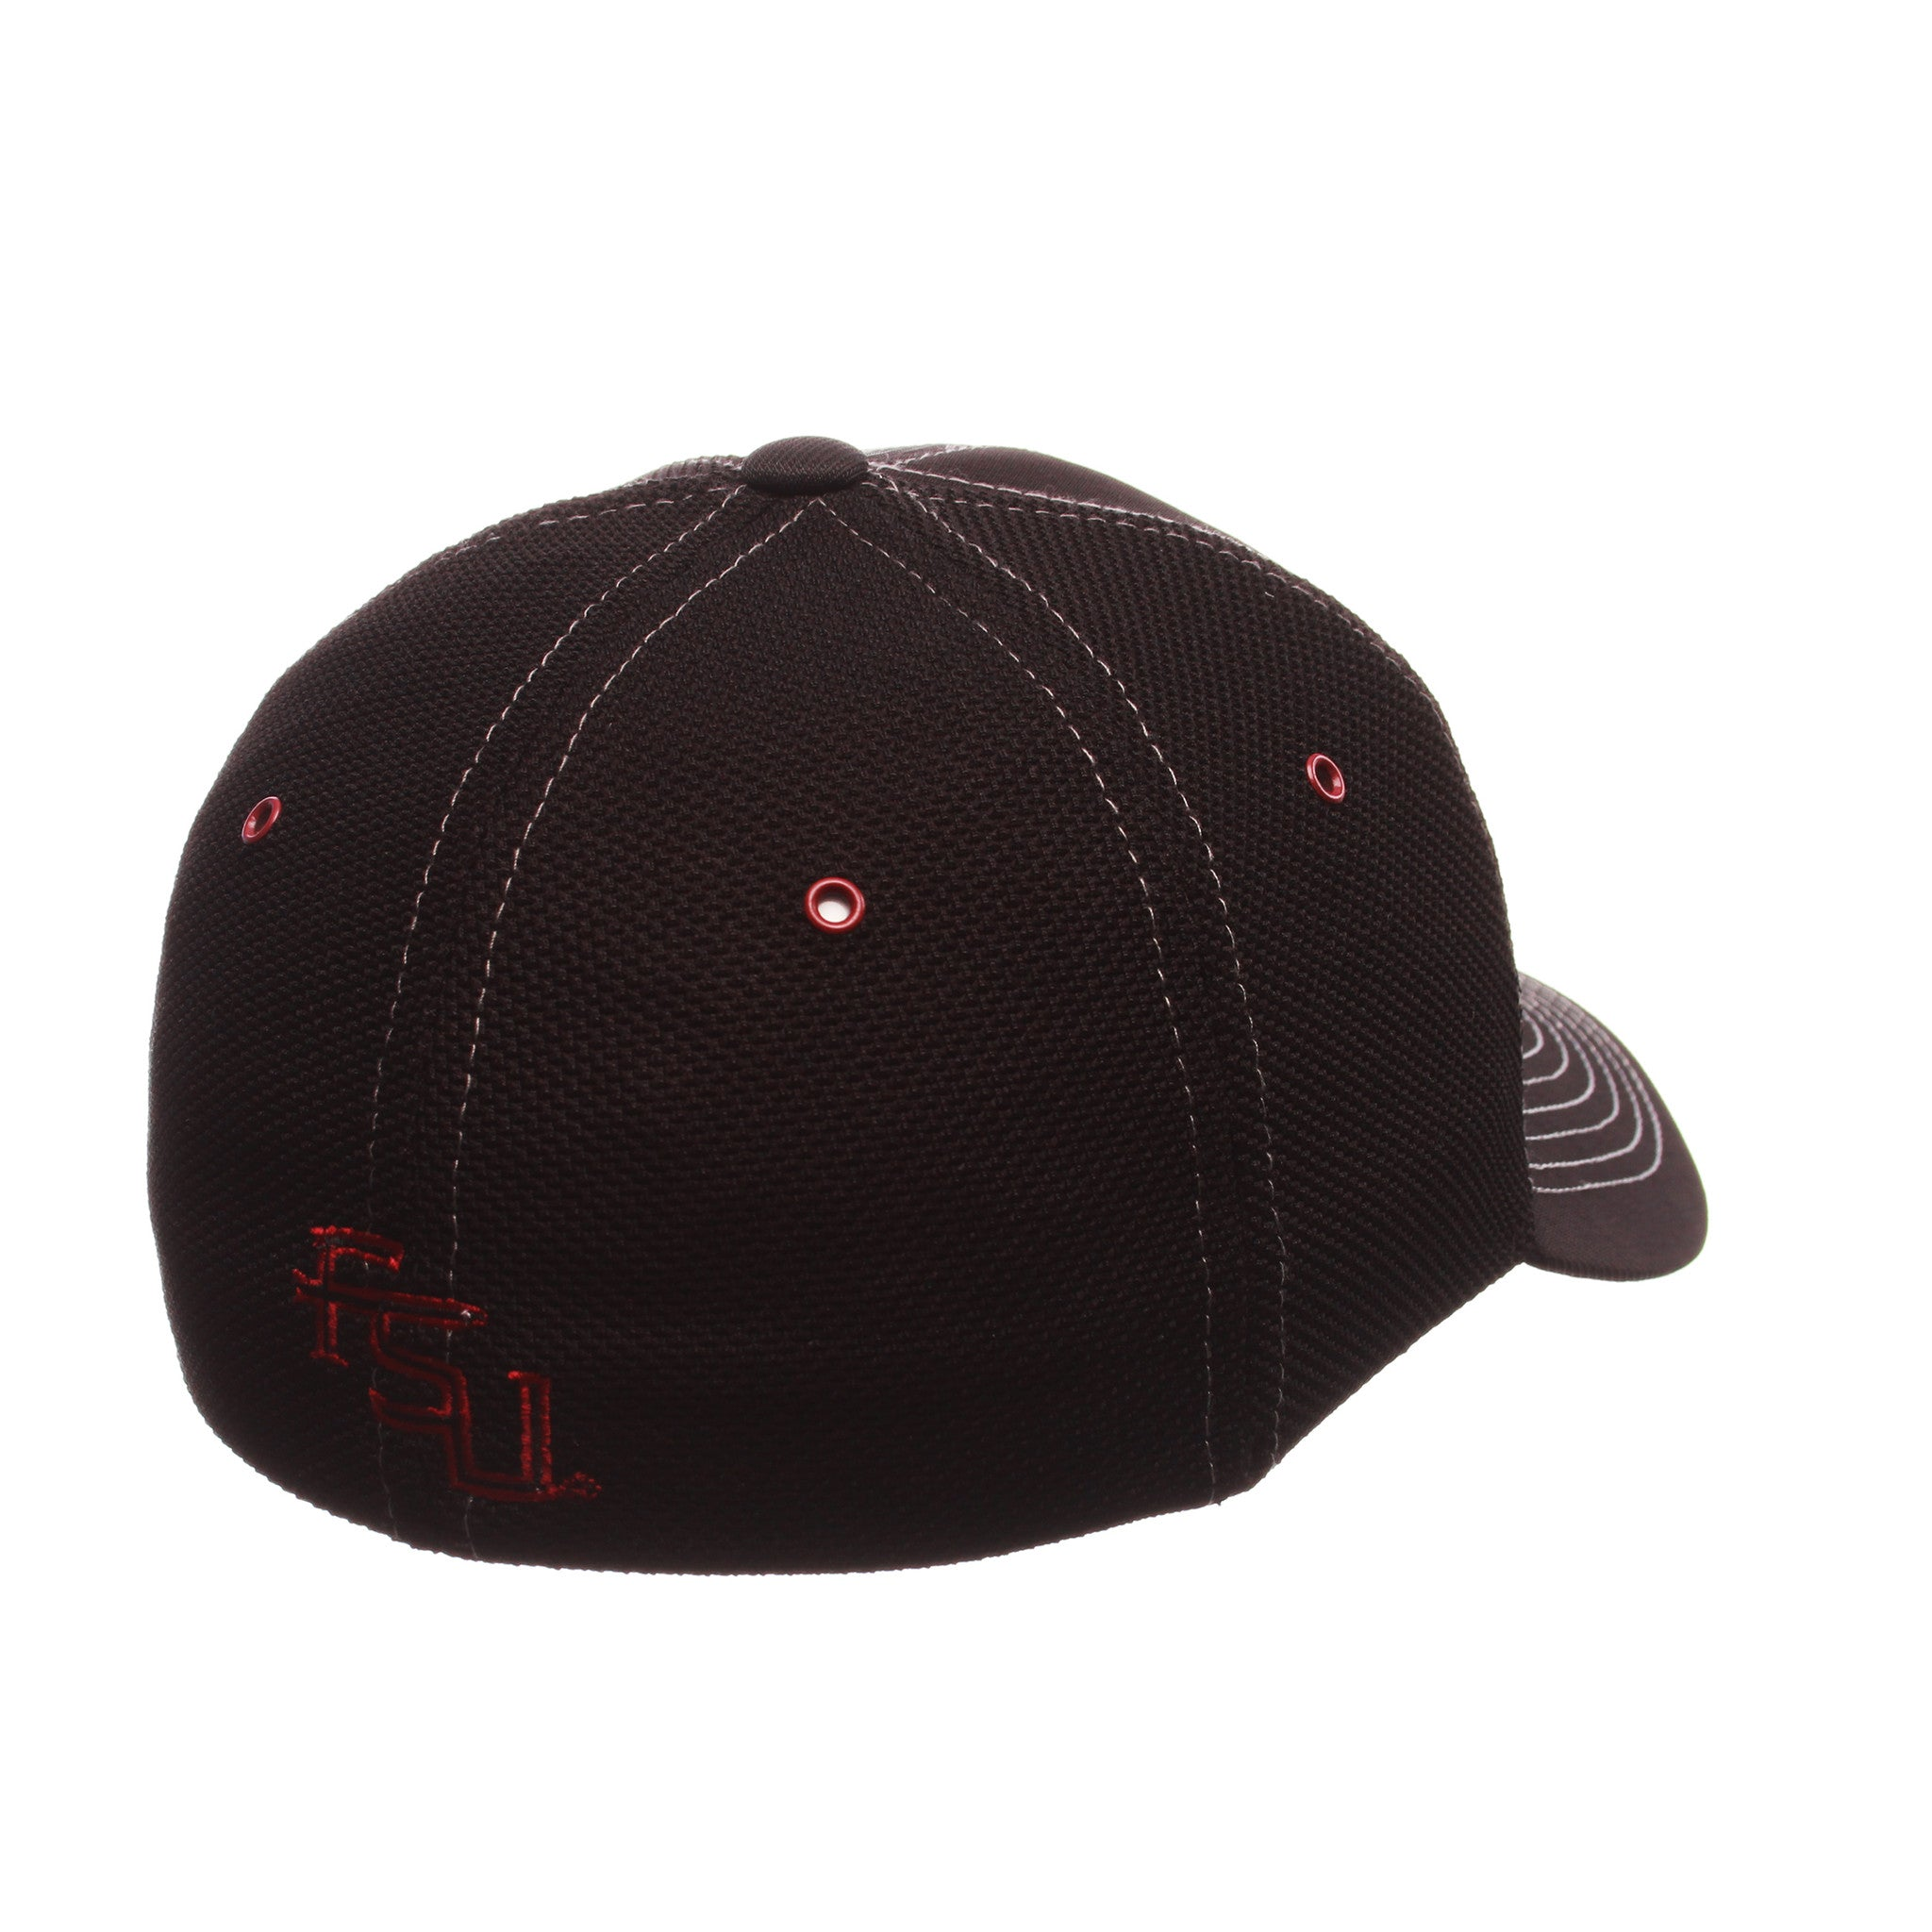 Florida State University Black Friday Slant Standard (Low) (SEMINOLE) Varied Colors Varied Panels Stretch Fit hats by Zephyr